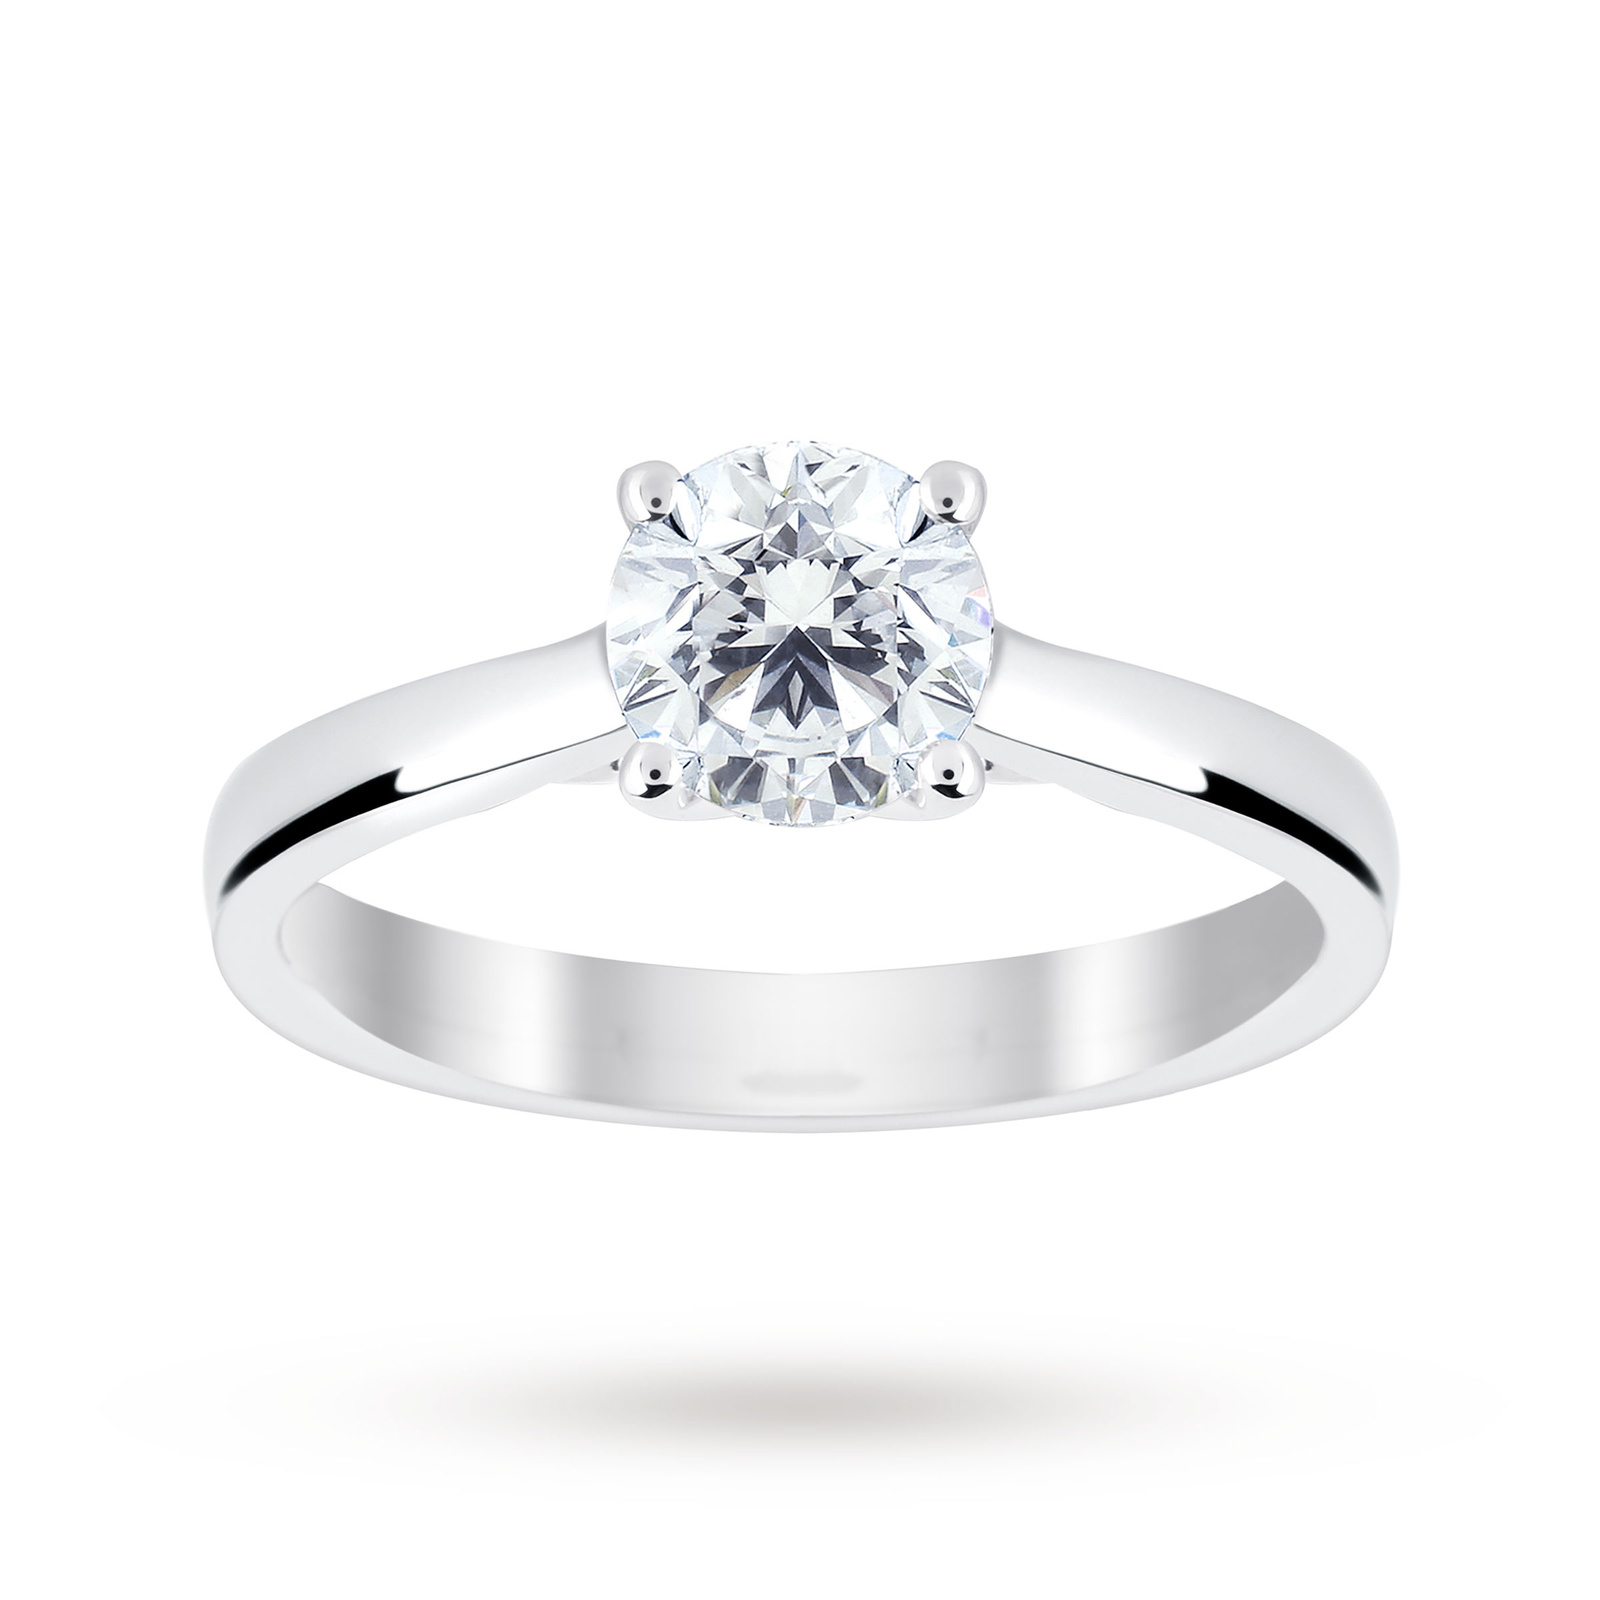 Platinum 1.00 Carat Diamond Solitaire Ring